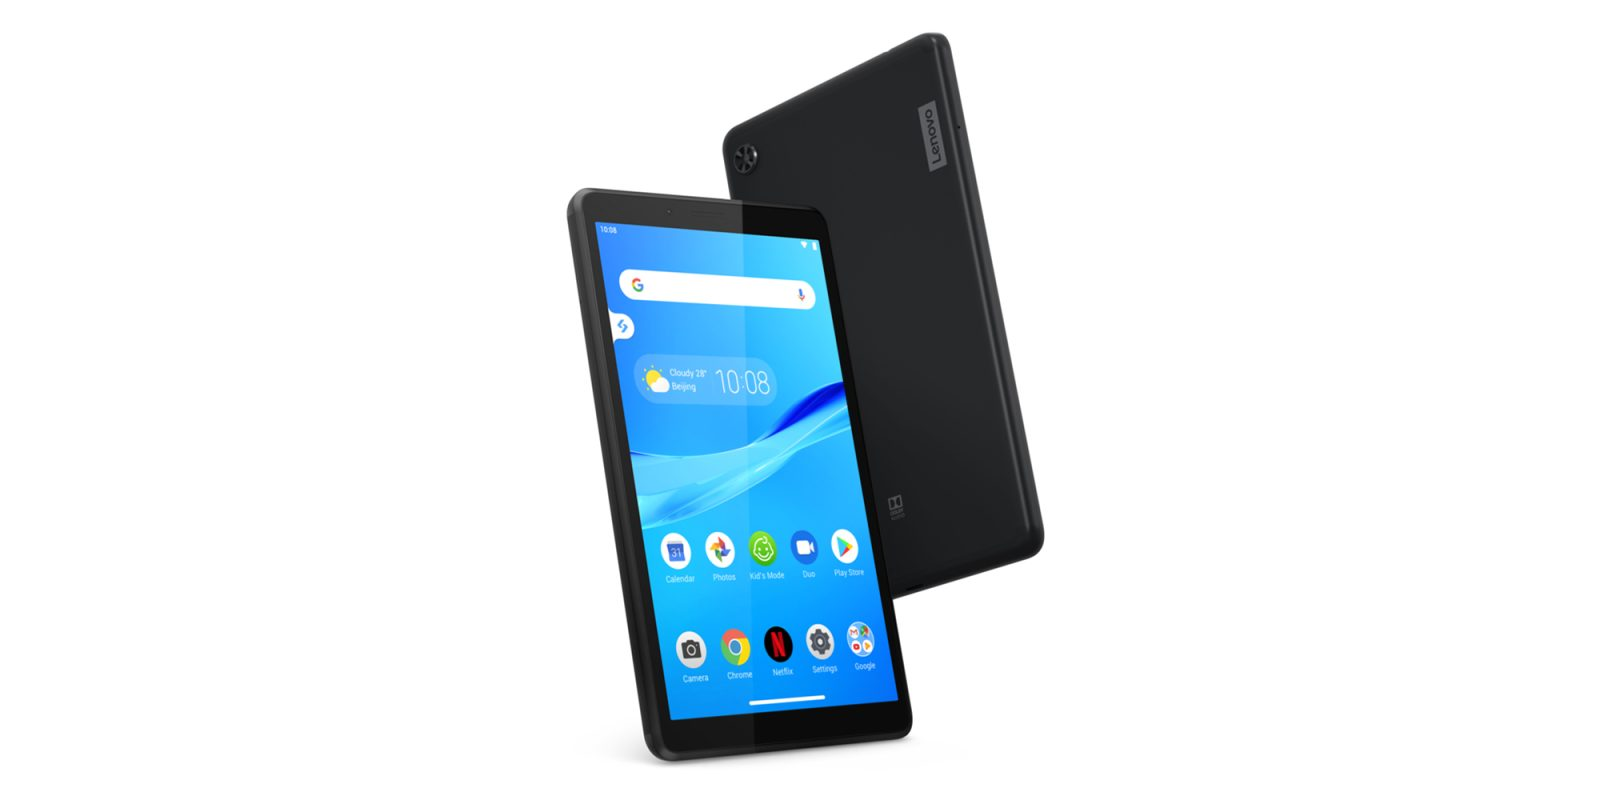 Lenovo's 2019 Android tablets start at $89 - 9to5Google